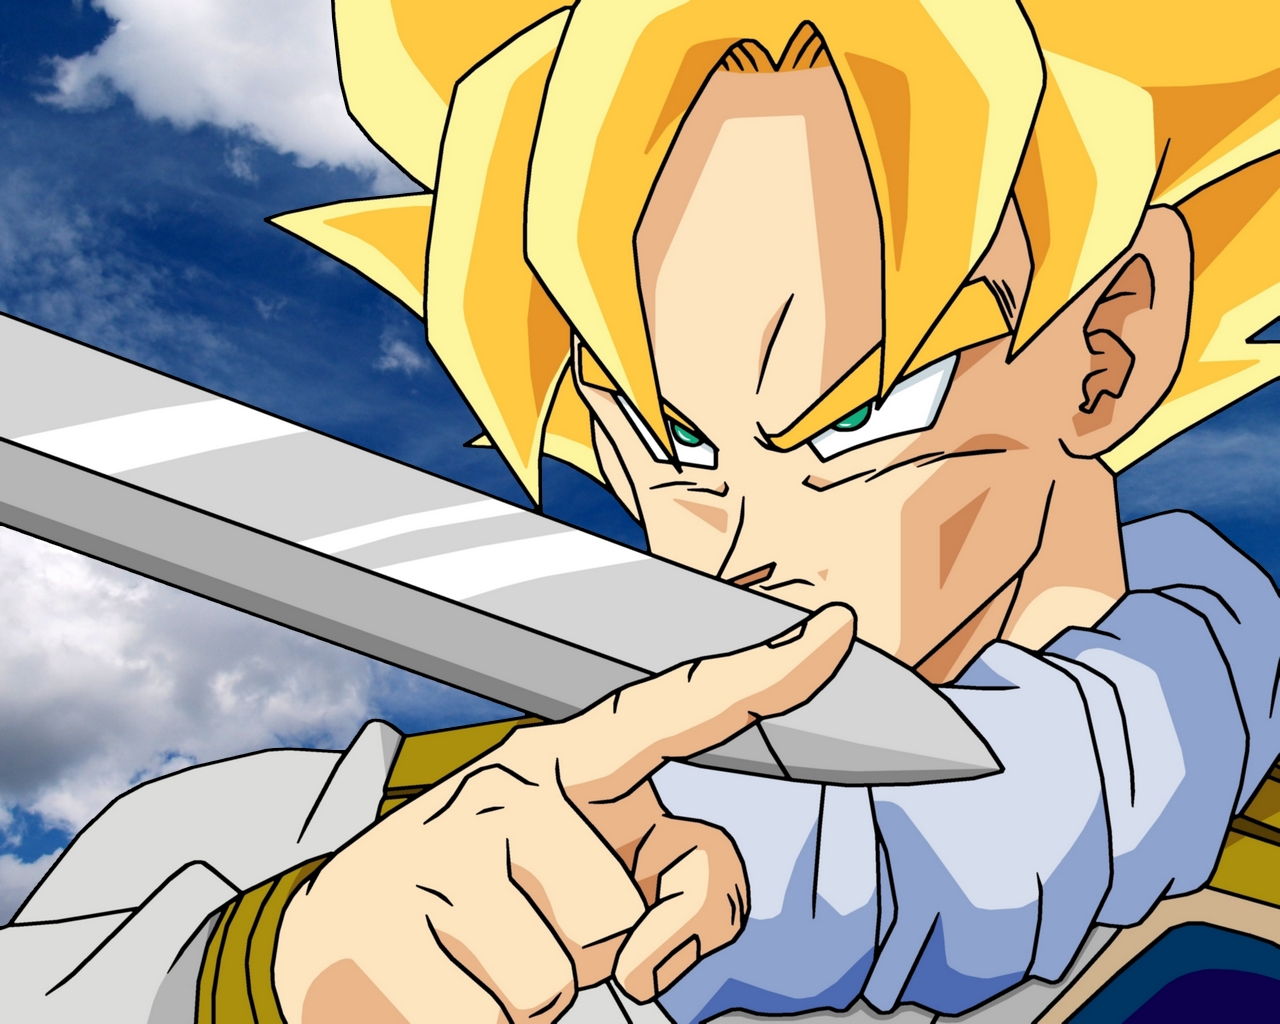 61243_goku_yardrat_sword_10_complete_wallpaper_122_977lo.jpg